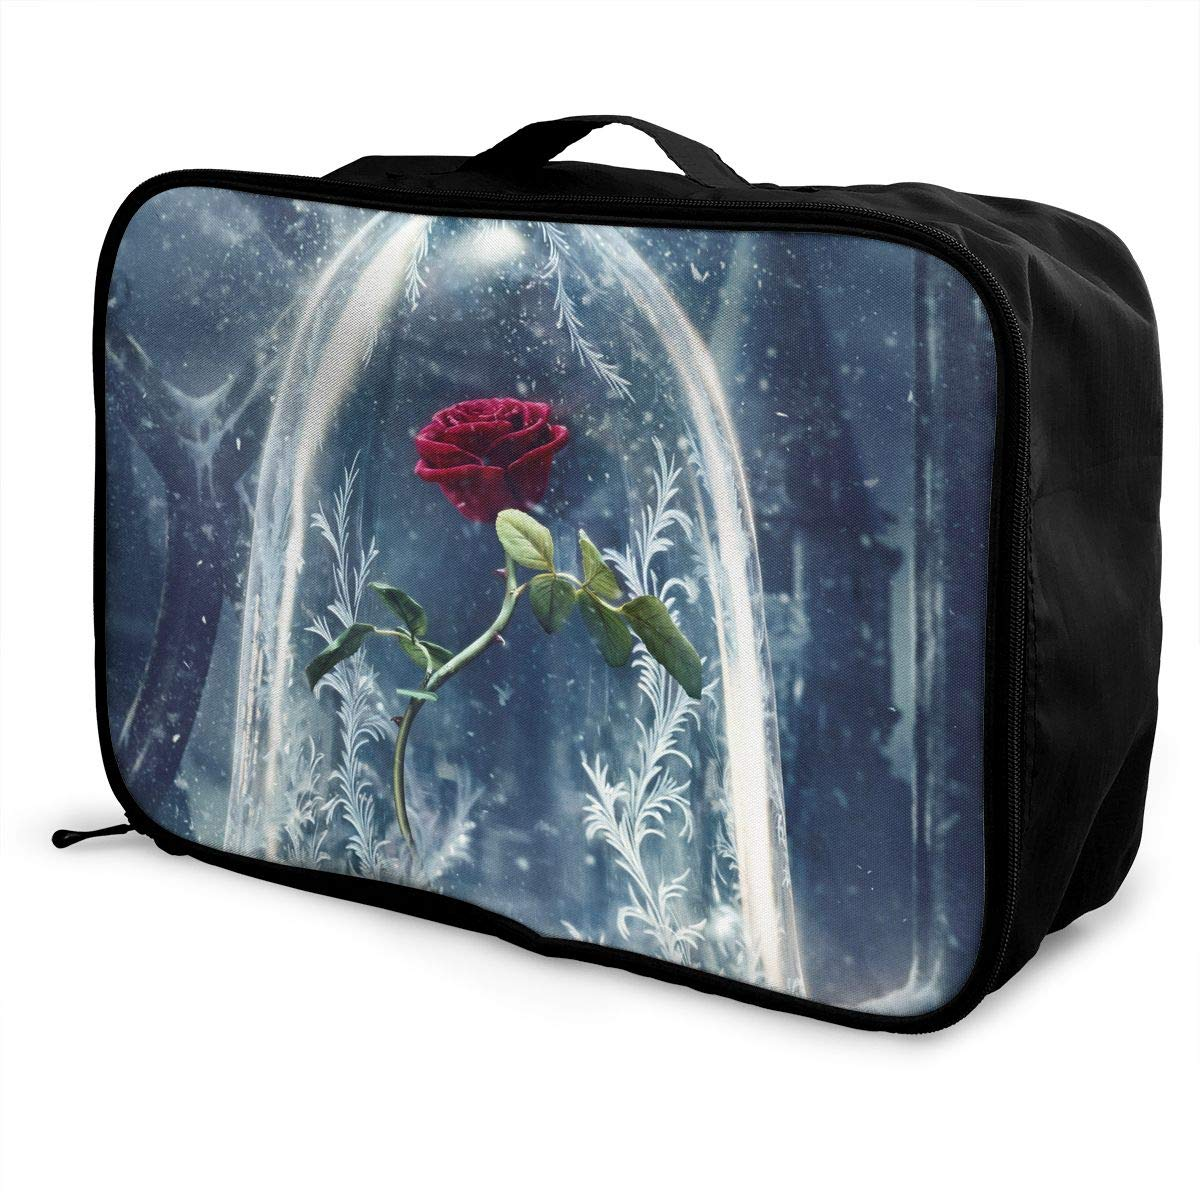 Travel Luggage Duffle Bag Lightweight Portable Handbag Red Rose Pattern Large Capacity Waterproof Foldable Storage Tote